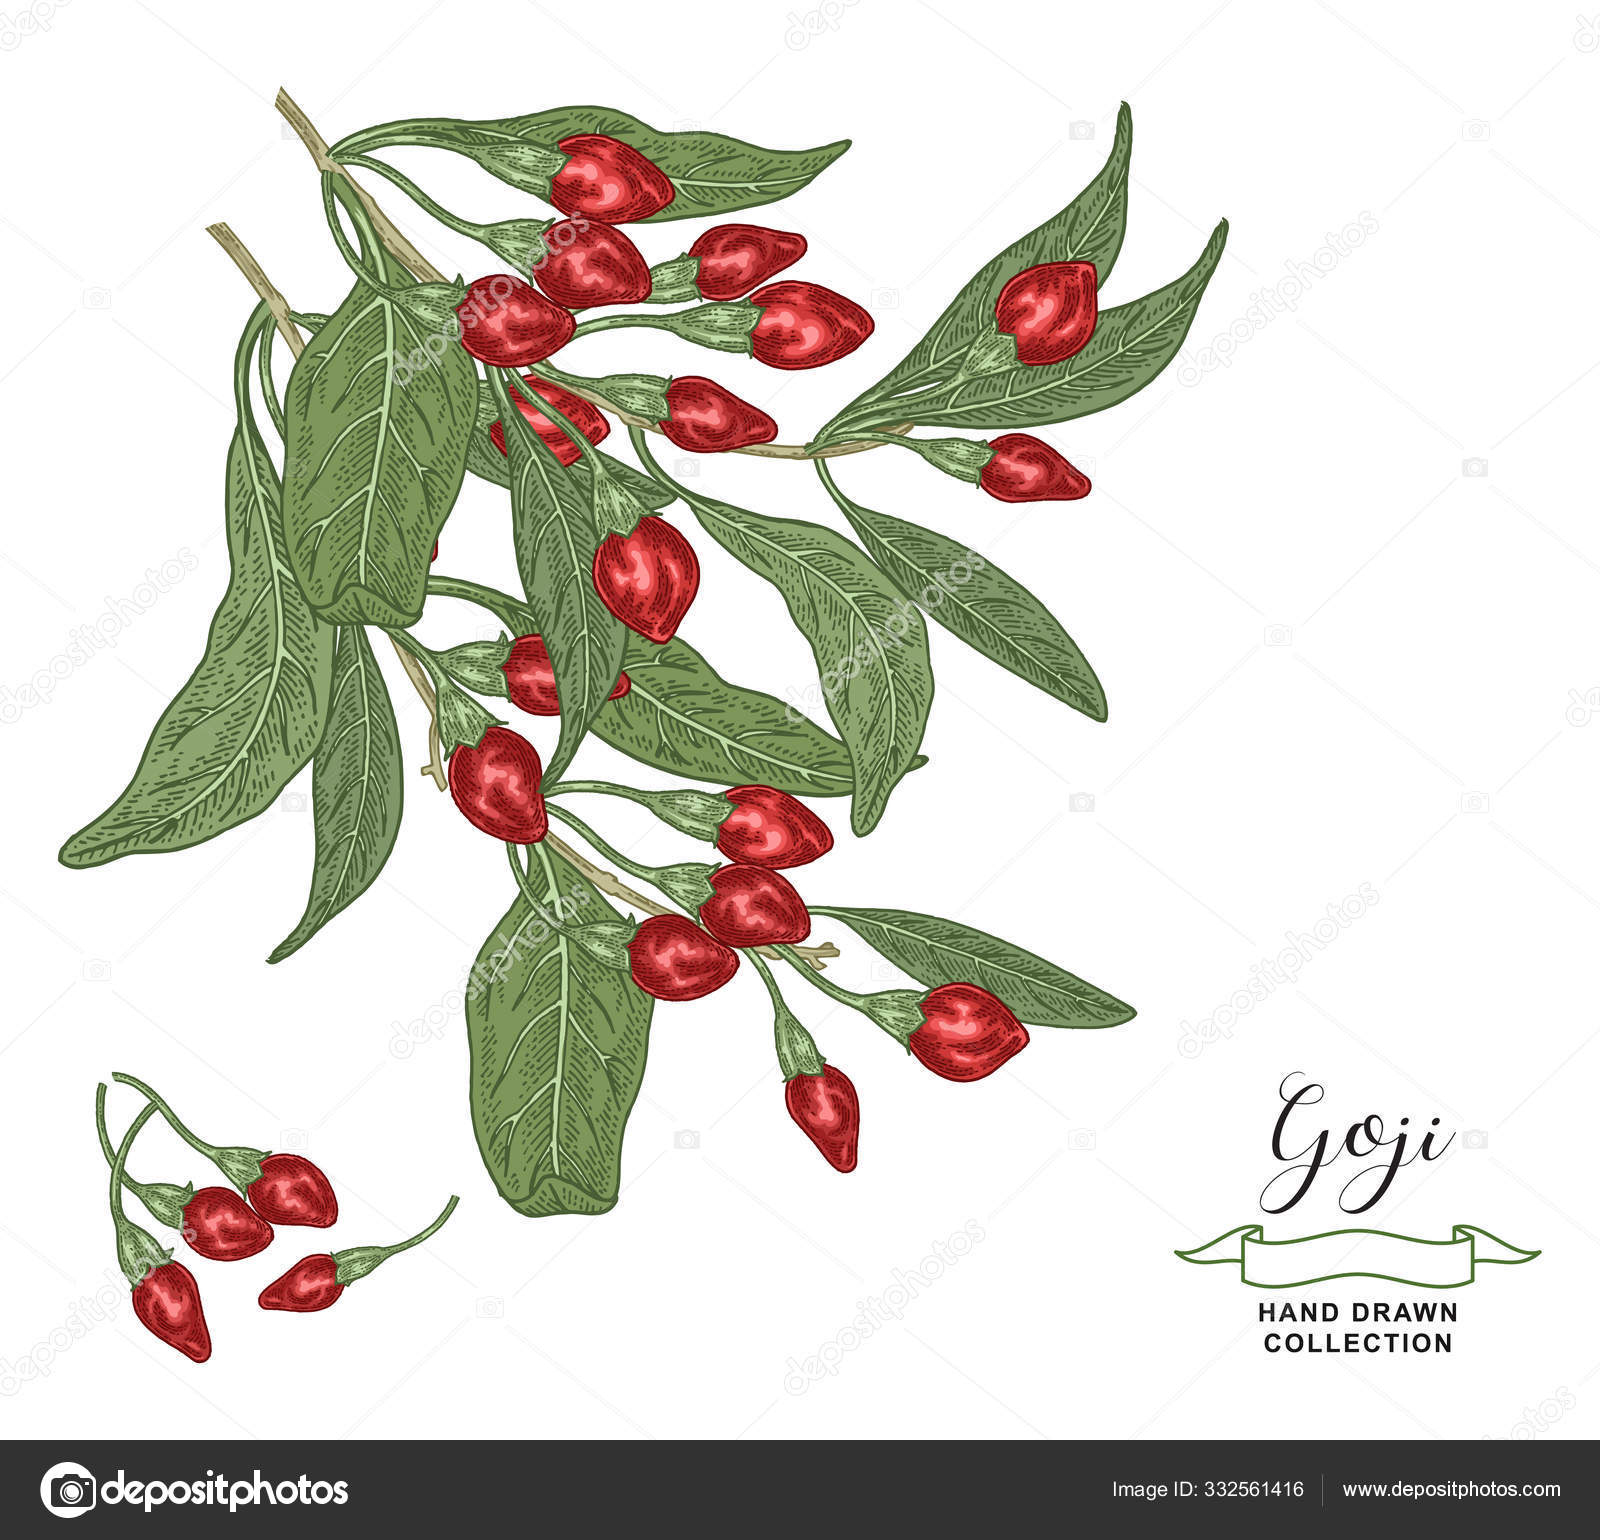 Goji Branches With Leaves And Berries Isolated On White Background